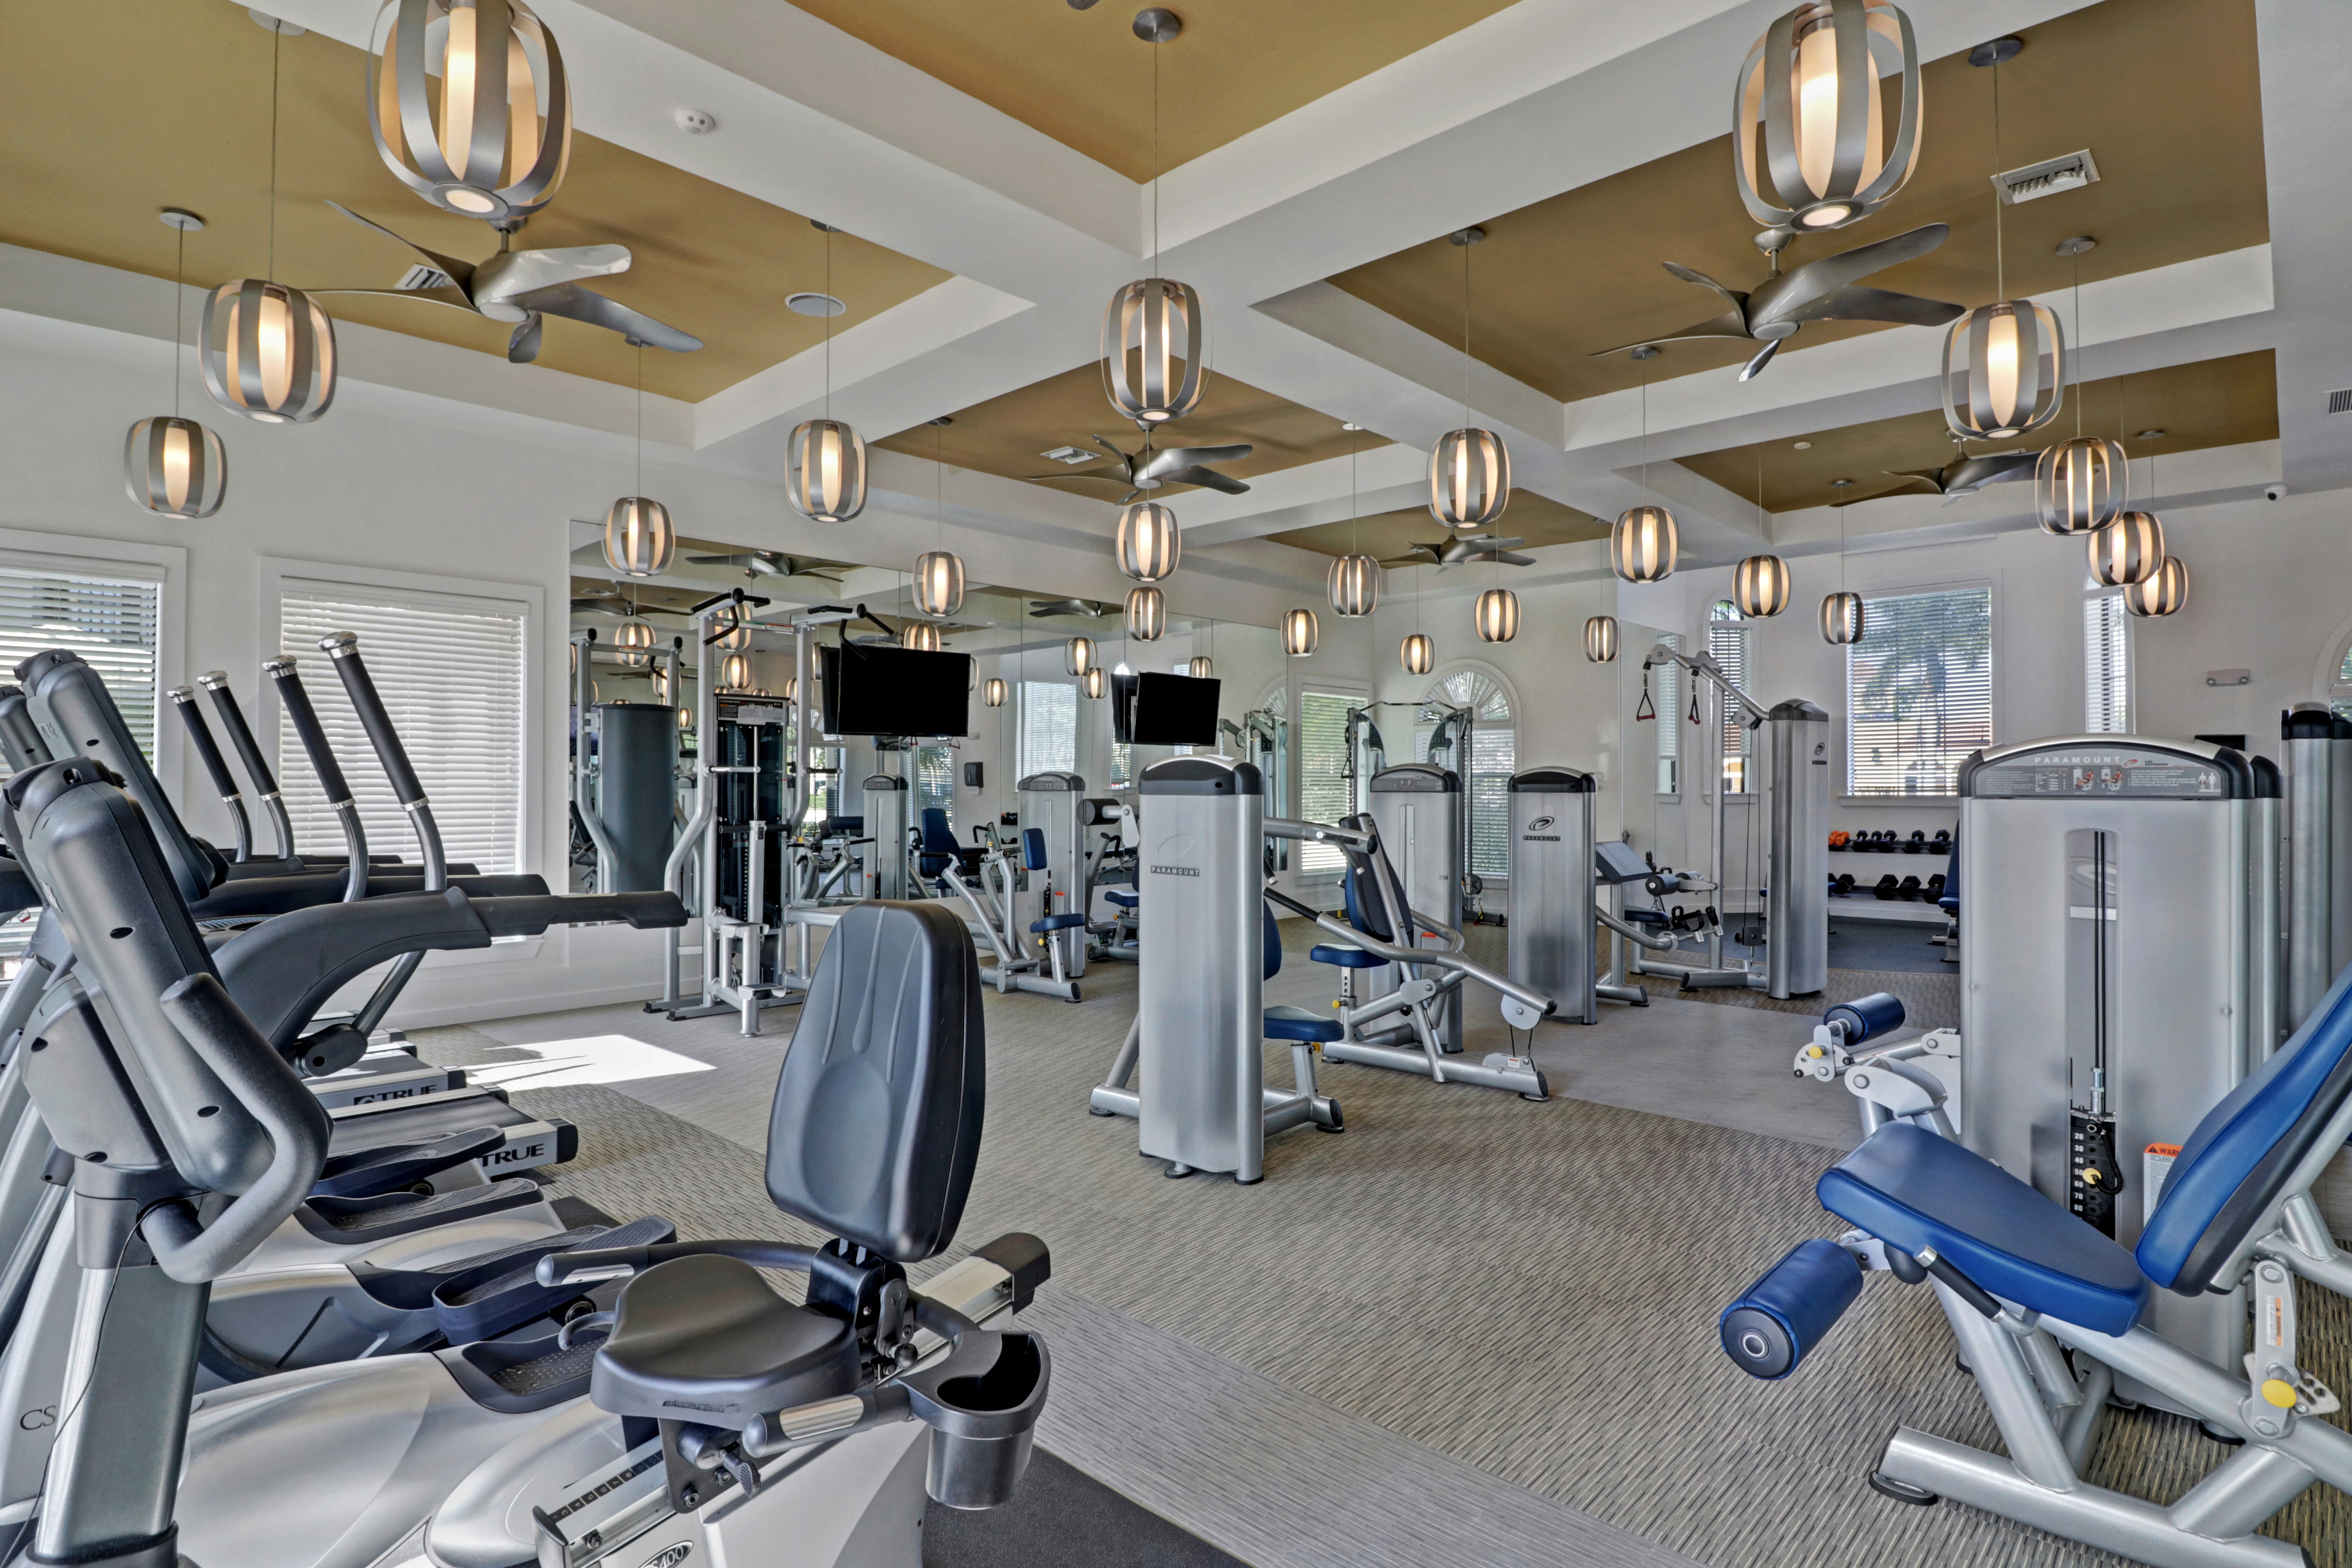 Modern exercise equipment in fitness center at Linden Pointe in Pompano Beach, Florida